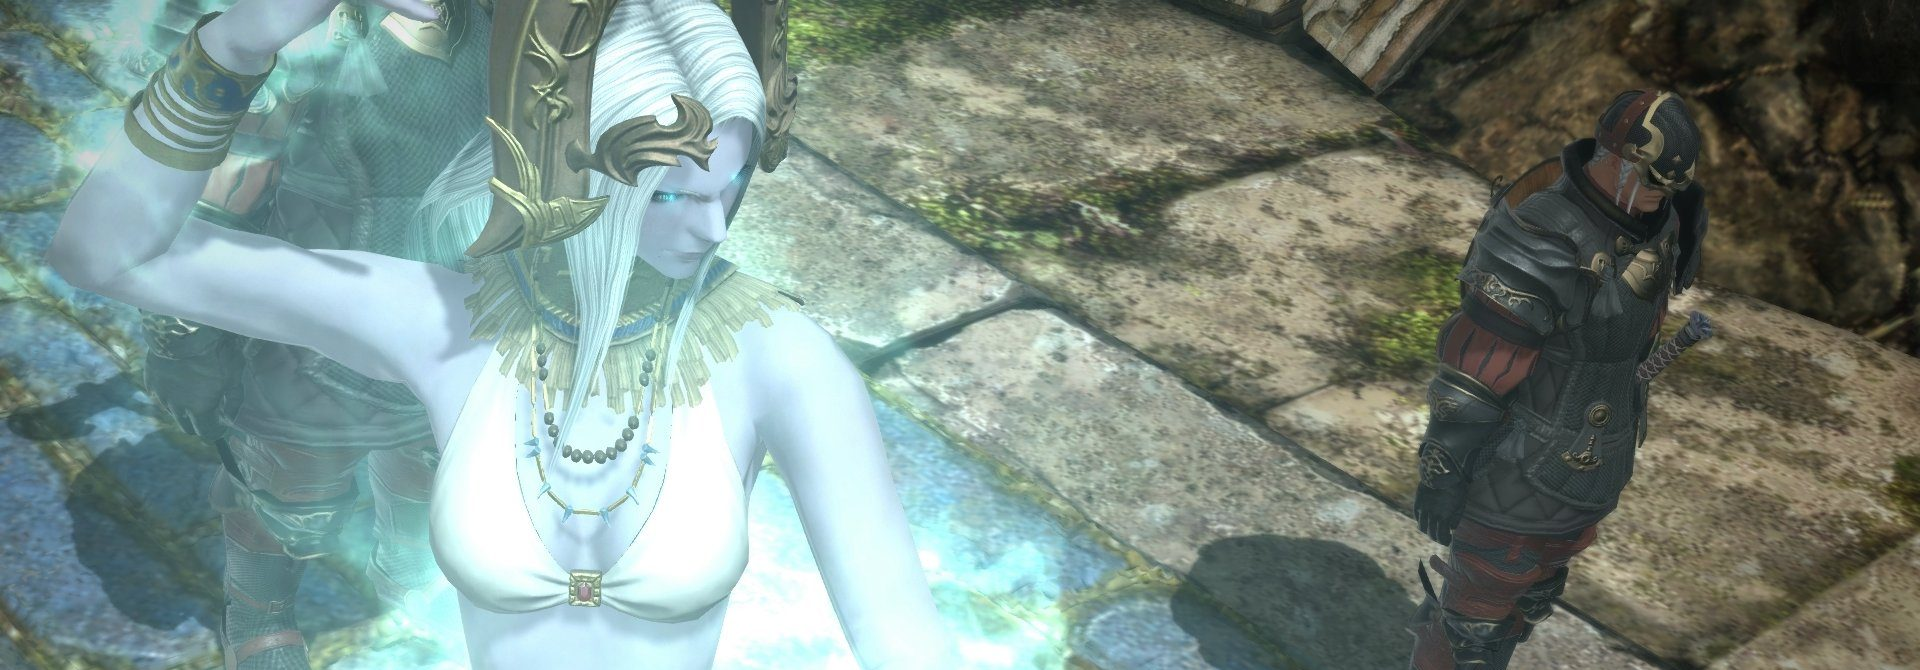 Final Fantasy XIV Online Upgrades To Patch 5.45